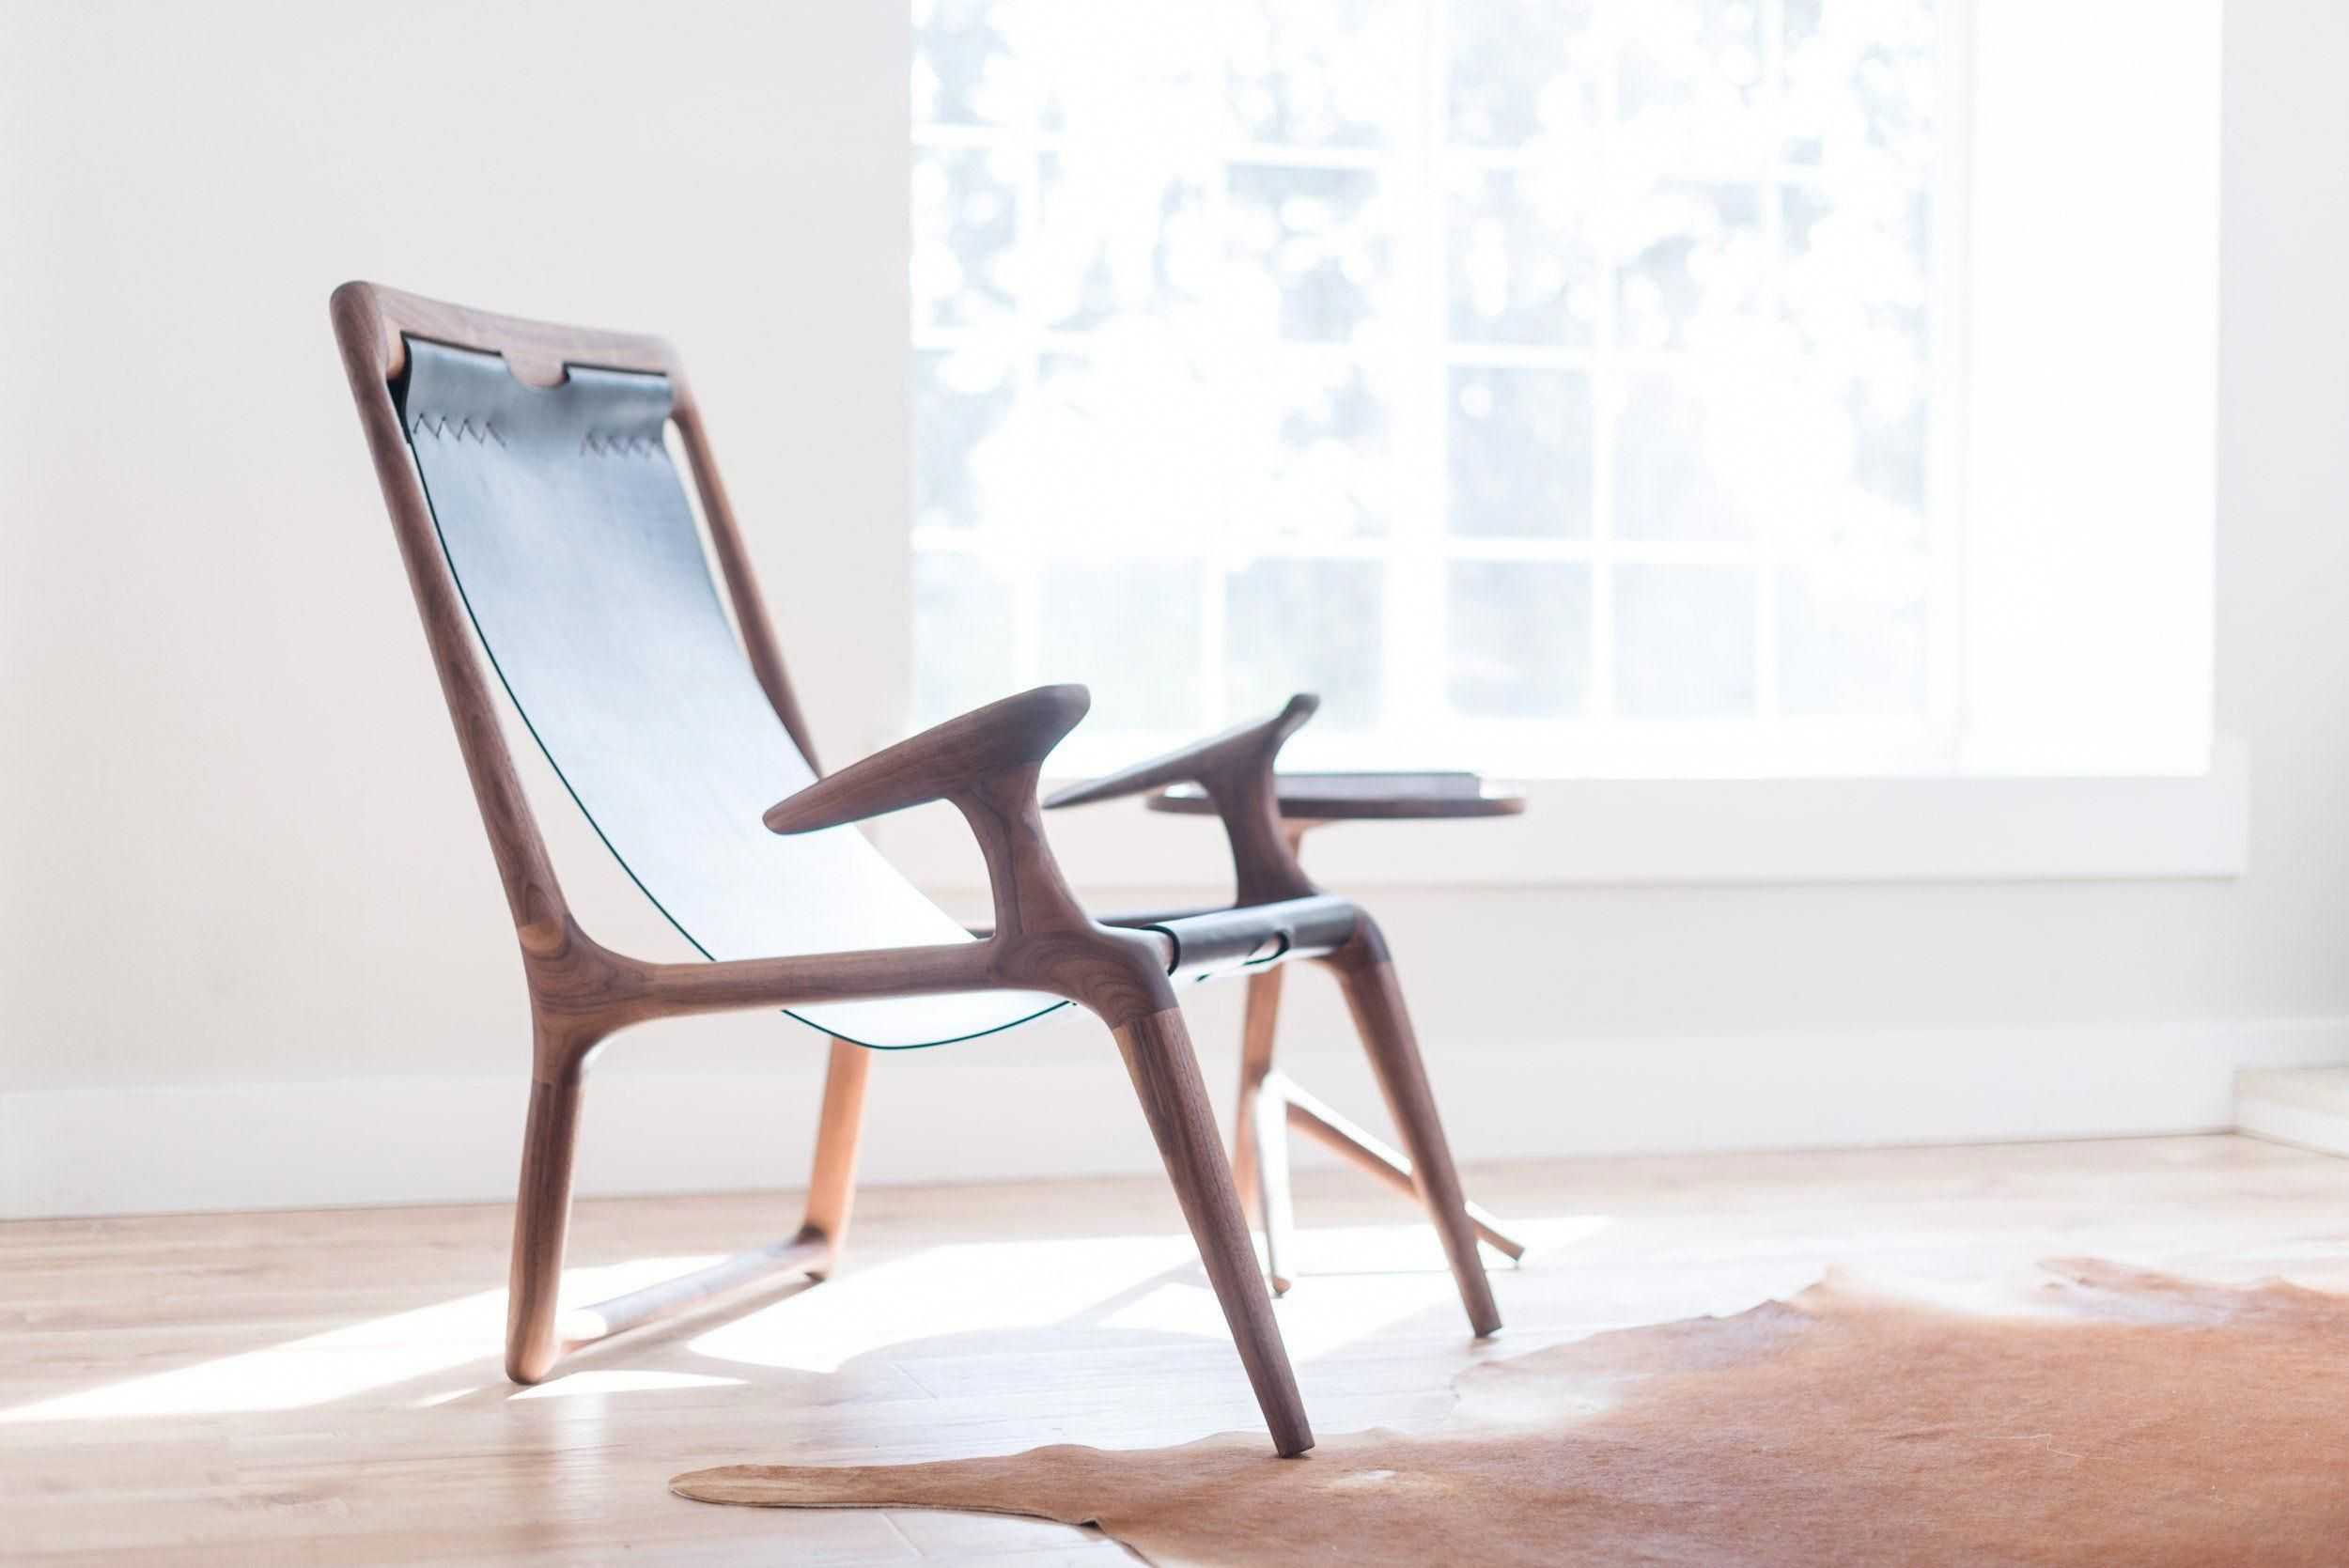 The sling chair walnut u black leather chairsforrentnearme